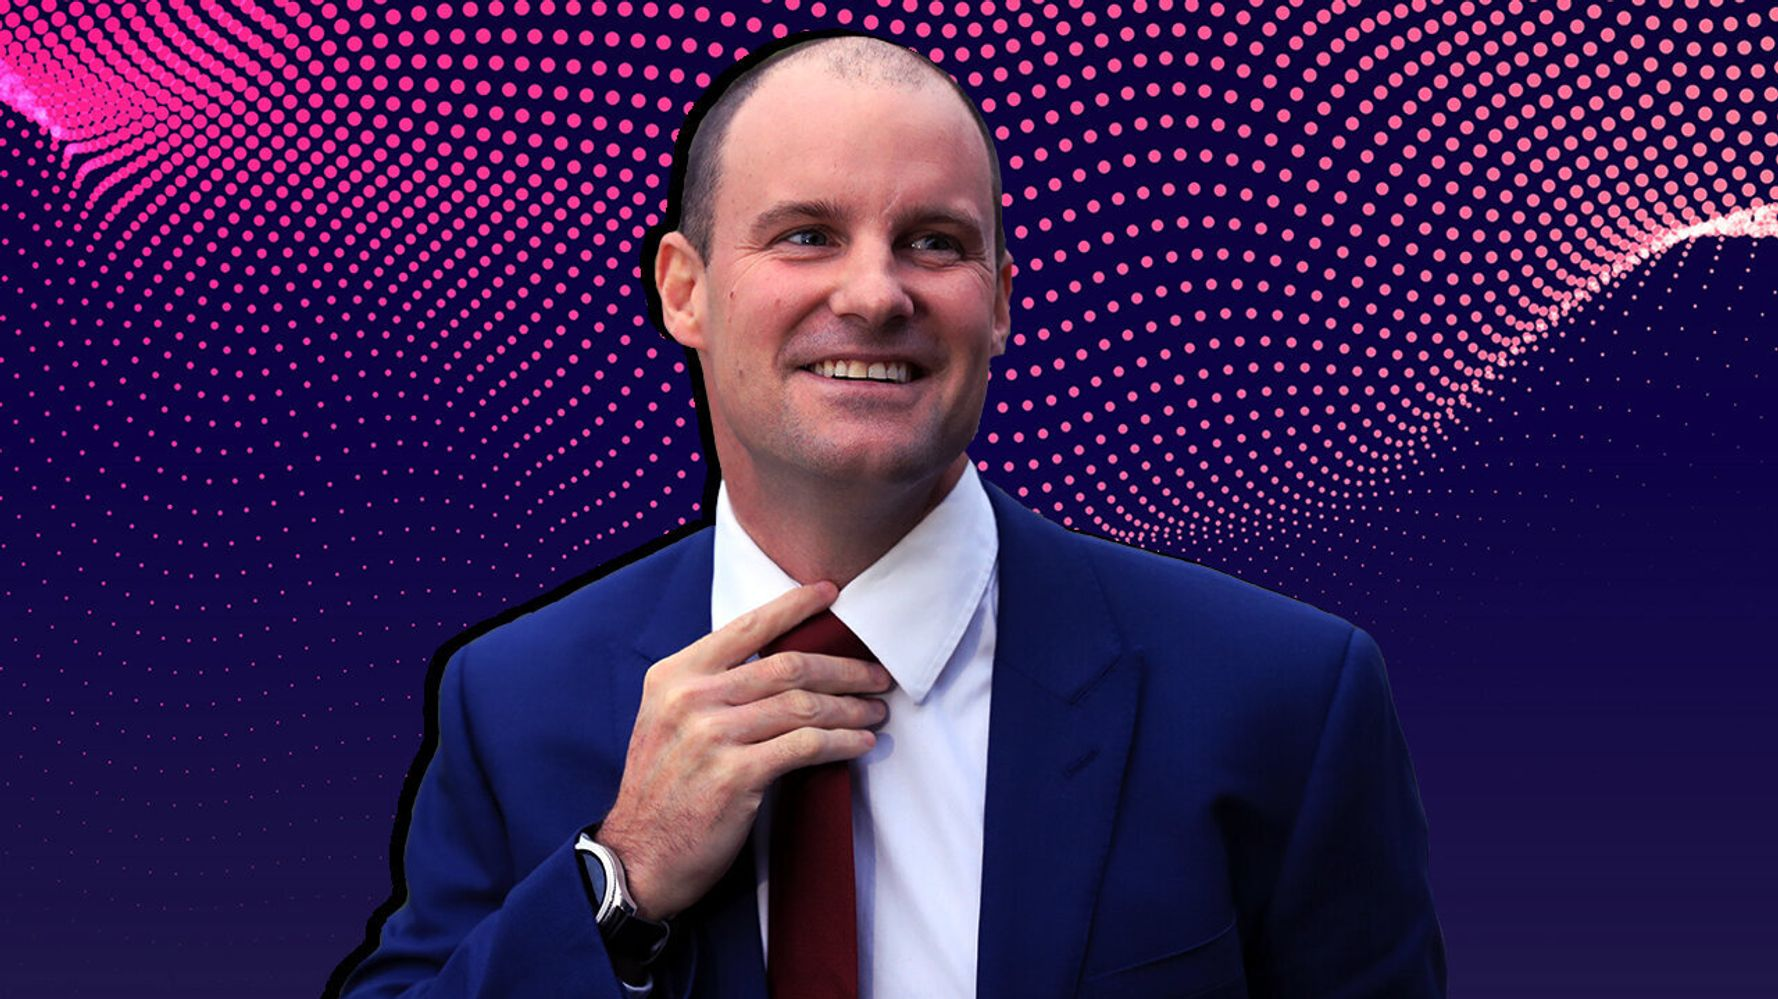 Andrew Strauss: 'I Try Not To Say I Have Bad Days. They're Just Days I'm Remembering'